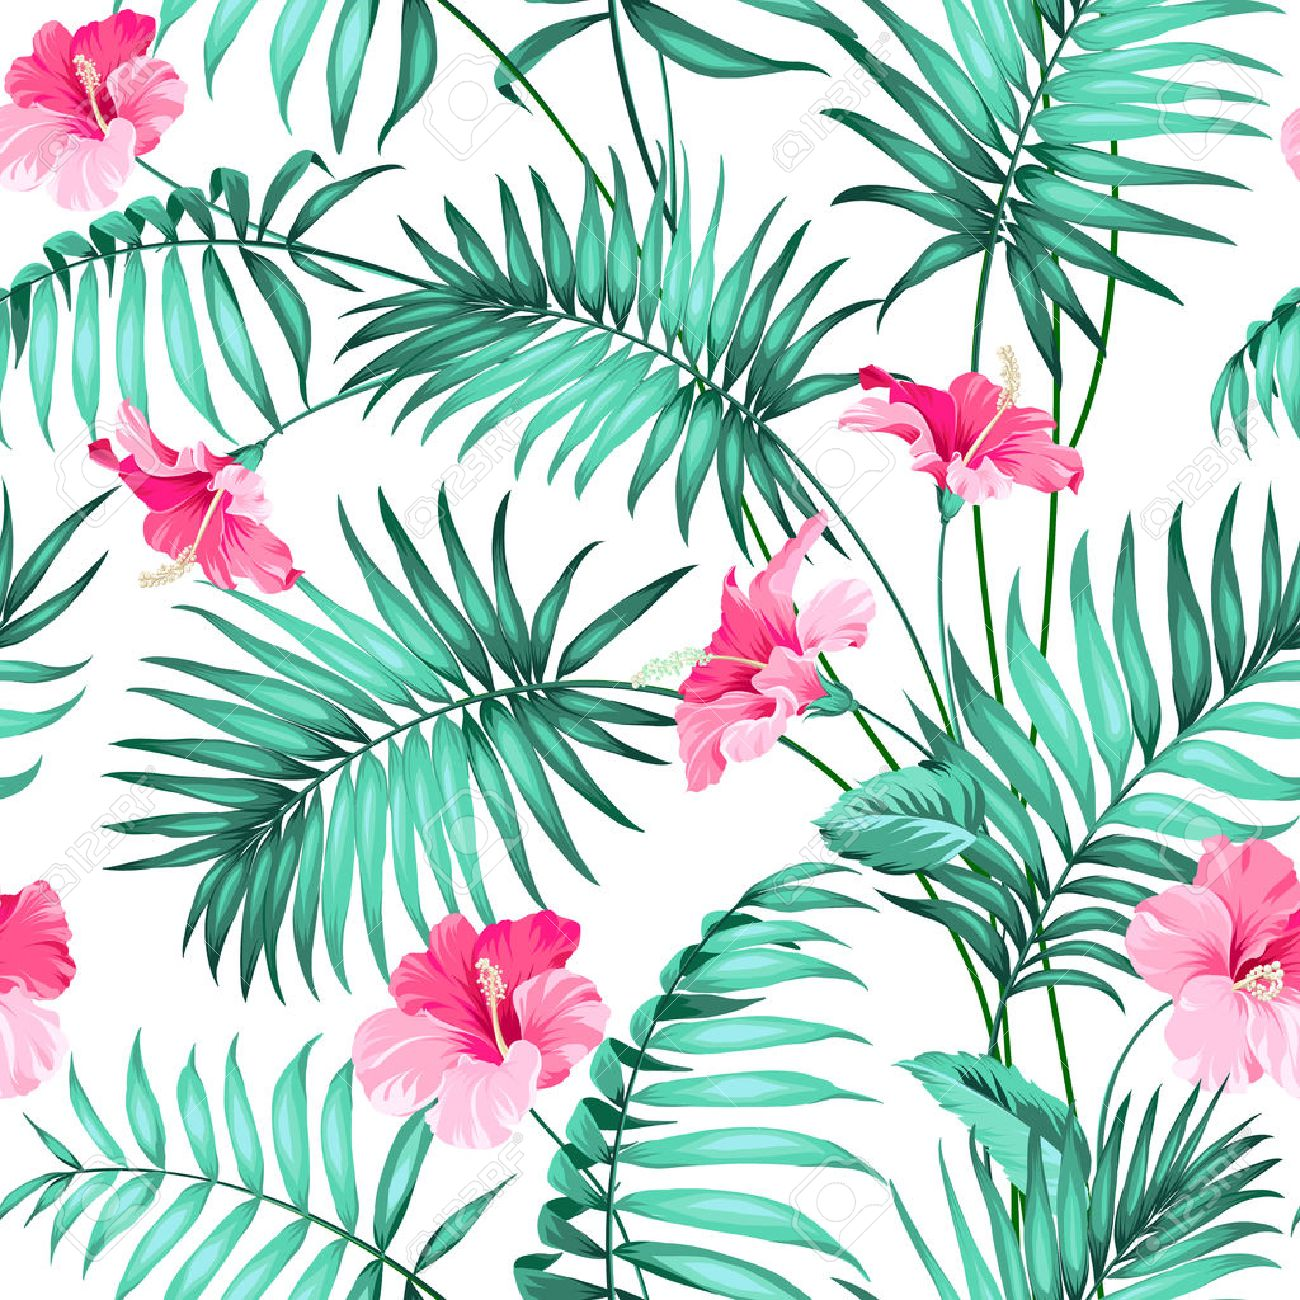 Seamless Pattern Tropical Background With Flowers Royalty Free Cliparts Vectors And Stock Illustration Image 40128664 You can also upload and share your favorite tropical background pictures. seamless pattern tropical background with flowers